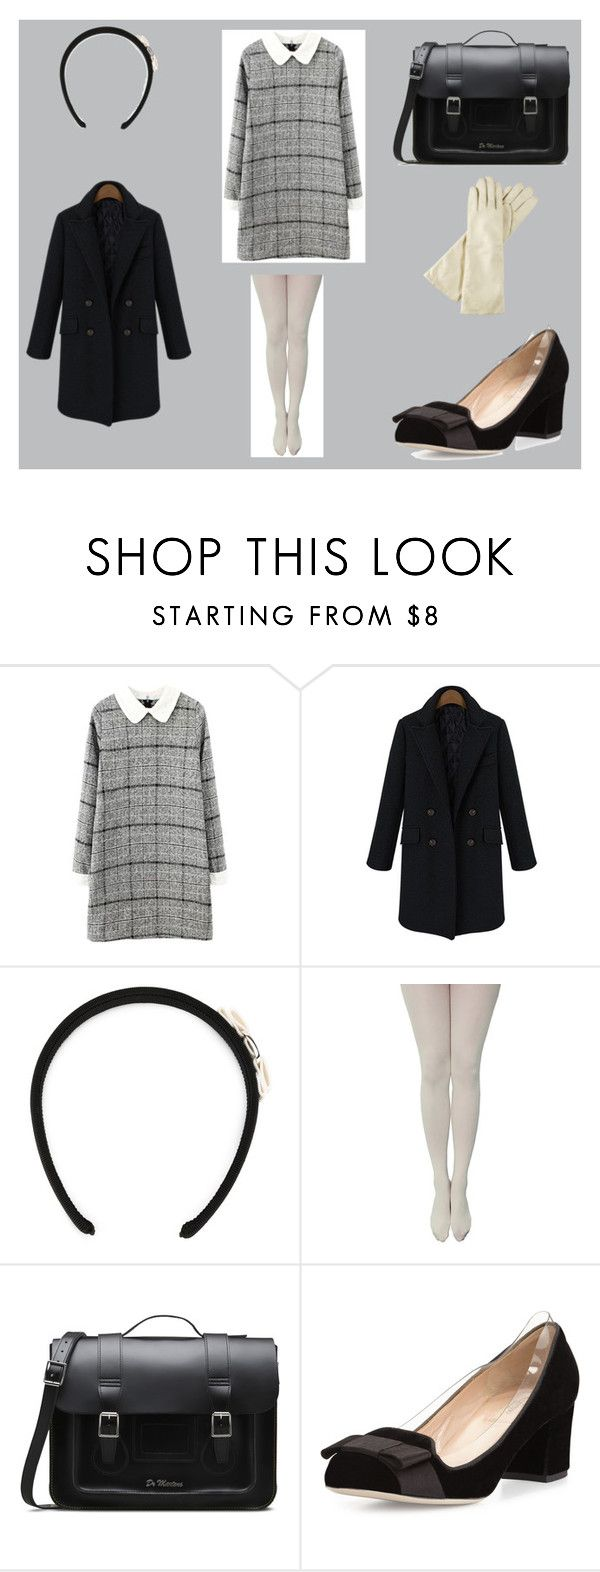 60' by sylwia-wojtczyk on Polyvore featuring moda, Valentino, Dr. Martens and Salvatore Ferragamo